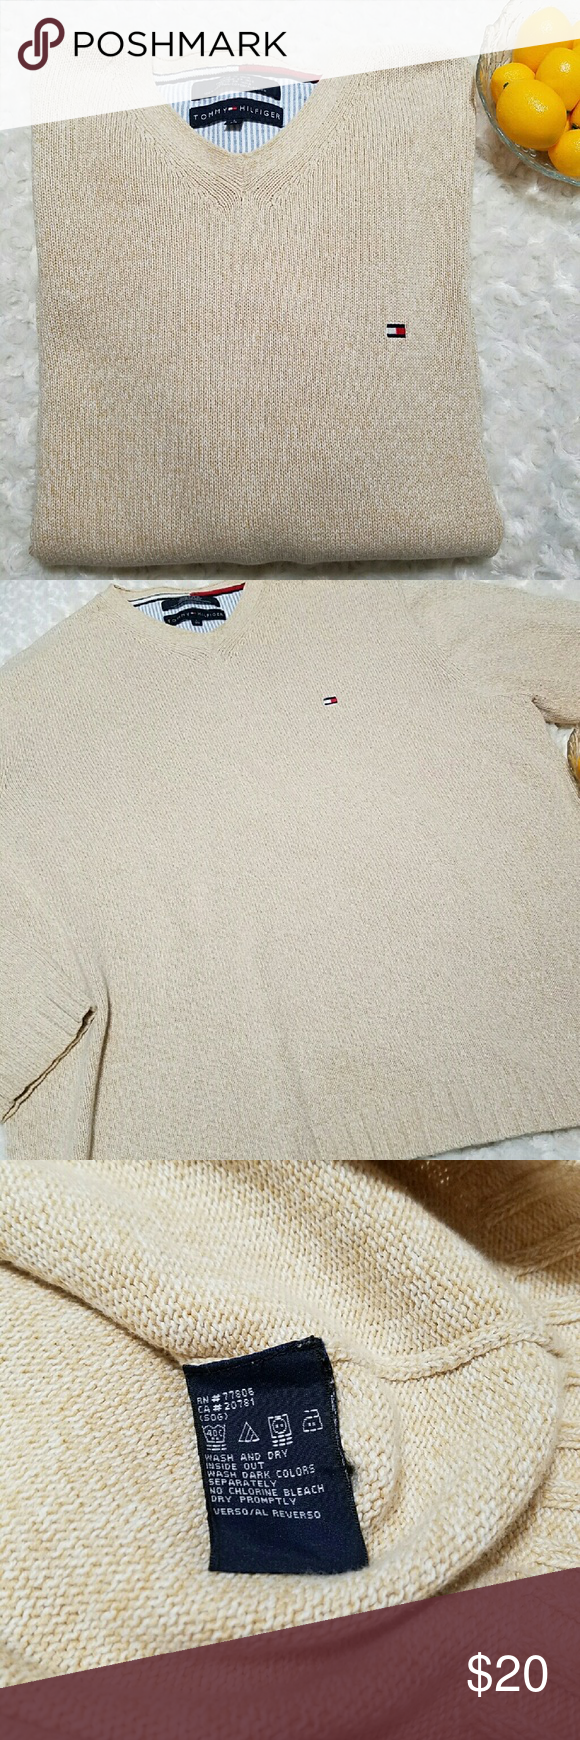 "Hilfiger Men's Sweater Tommy Hilfiger men's oatmeal colored v neck sweater. EUC  No flaws.  Pit to pit 25 1/2""  Length 27"" Tommy Hilfiger Sweaters V-Neck"